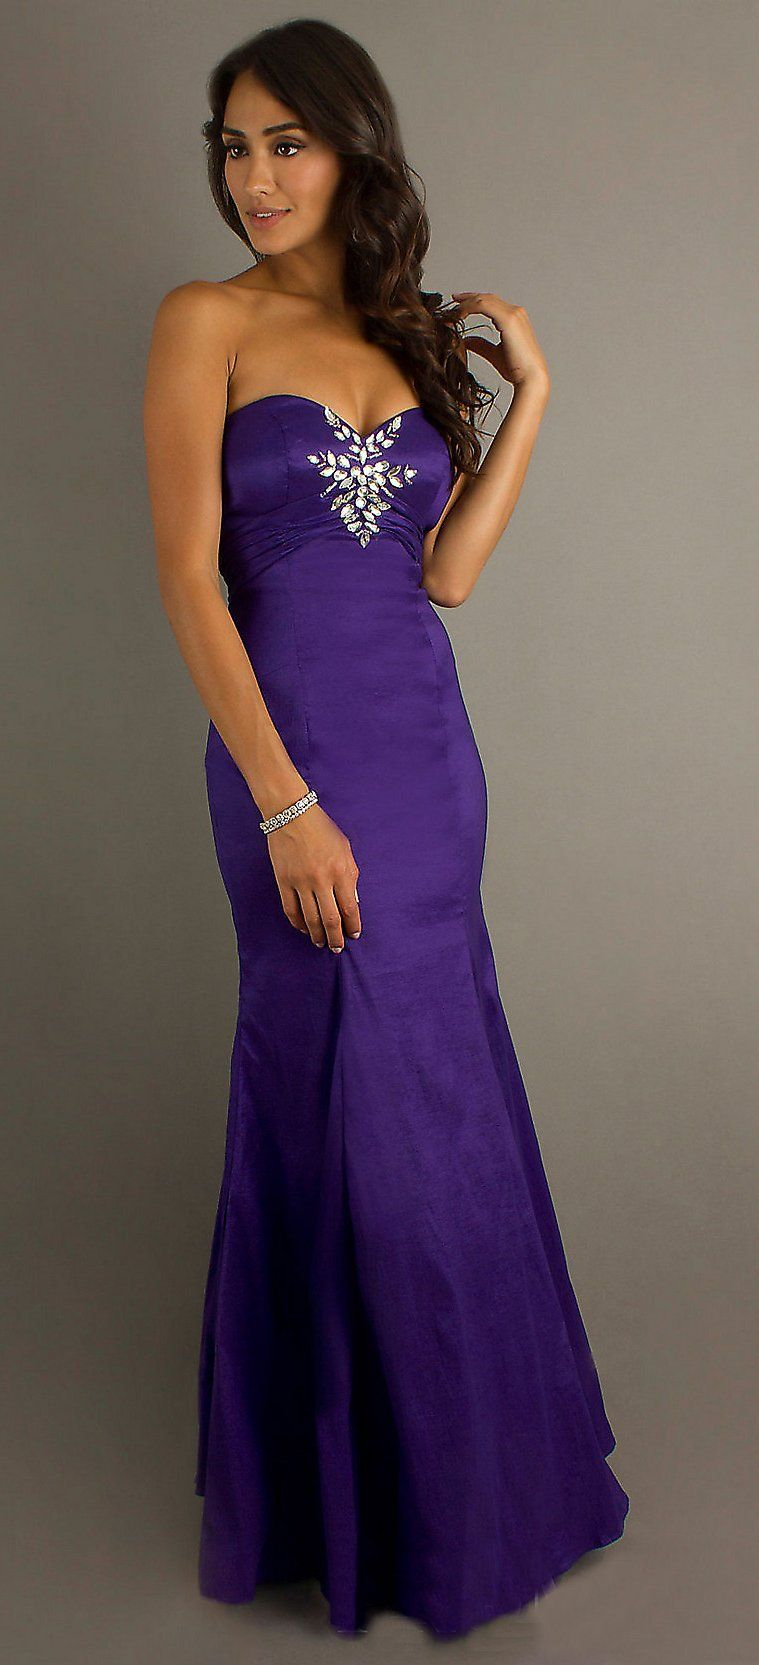 Purple Mermaid Prom Dress Long Strapless Classic Hollywood Style ...